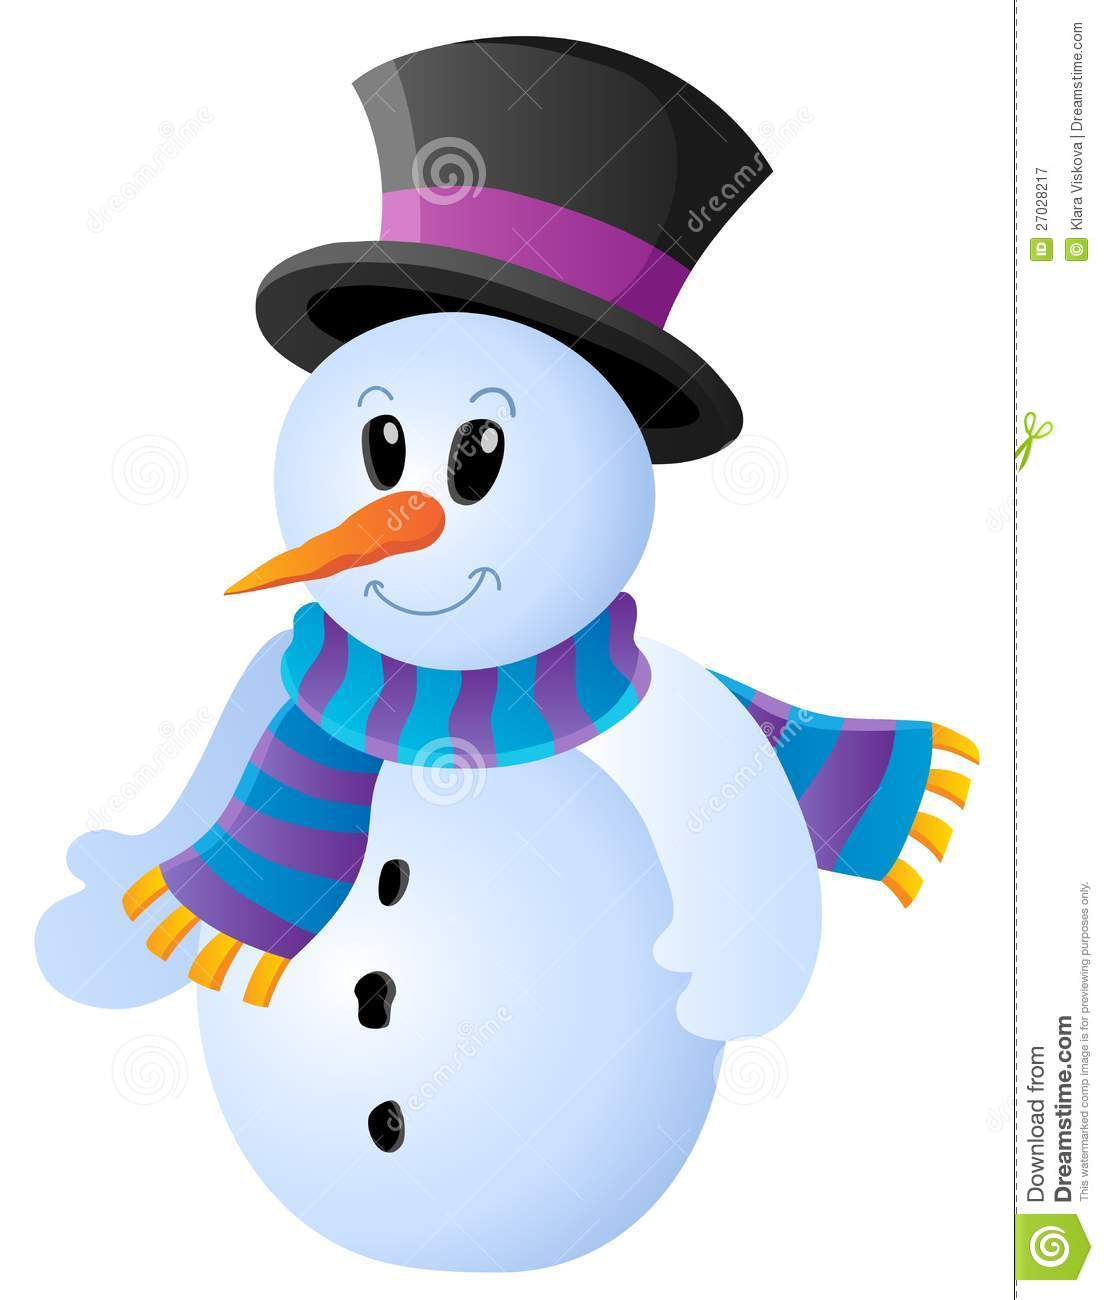 Winter snowman theme image 1 royalty free stock photography image